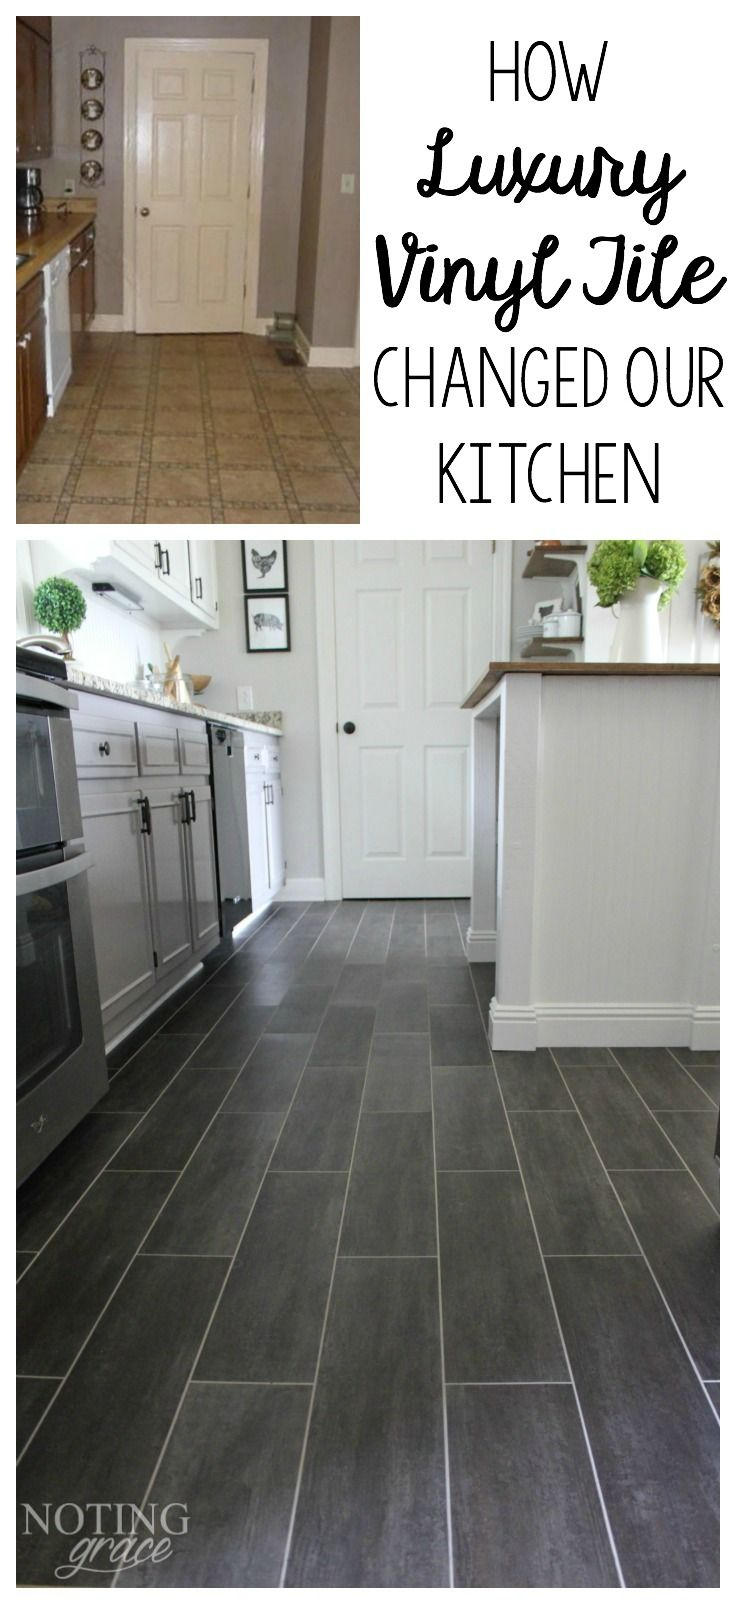 Diy kitchen flooring luxury vinyl tile vinyl tiles and for Luxury linoleum flooring